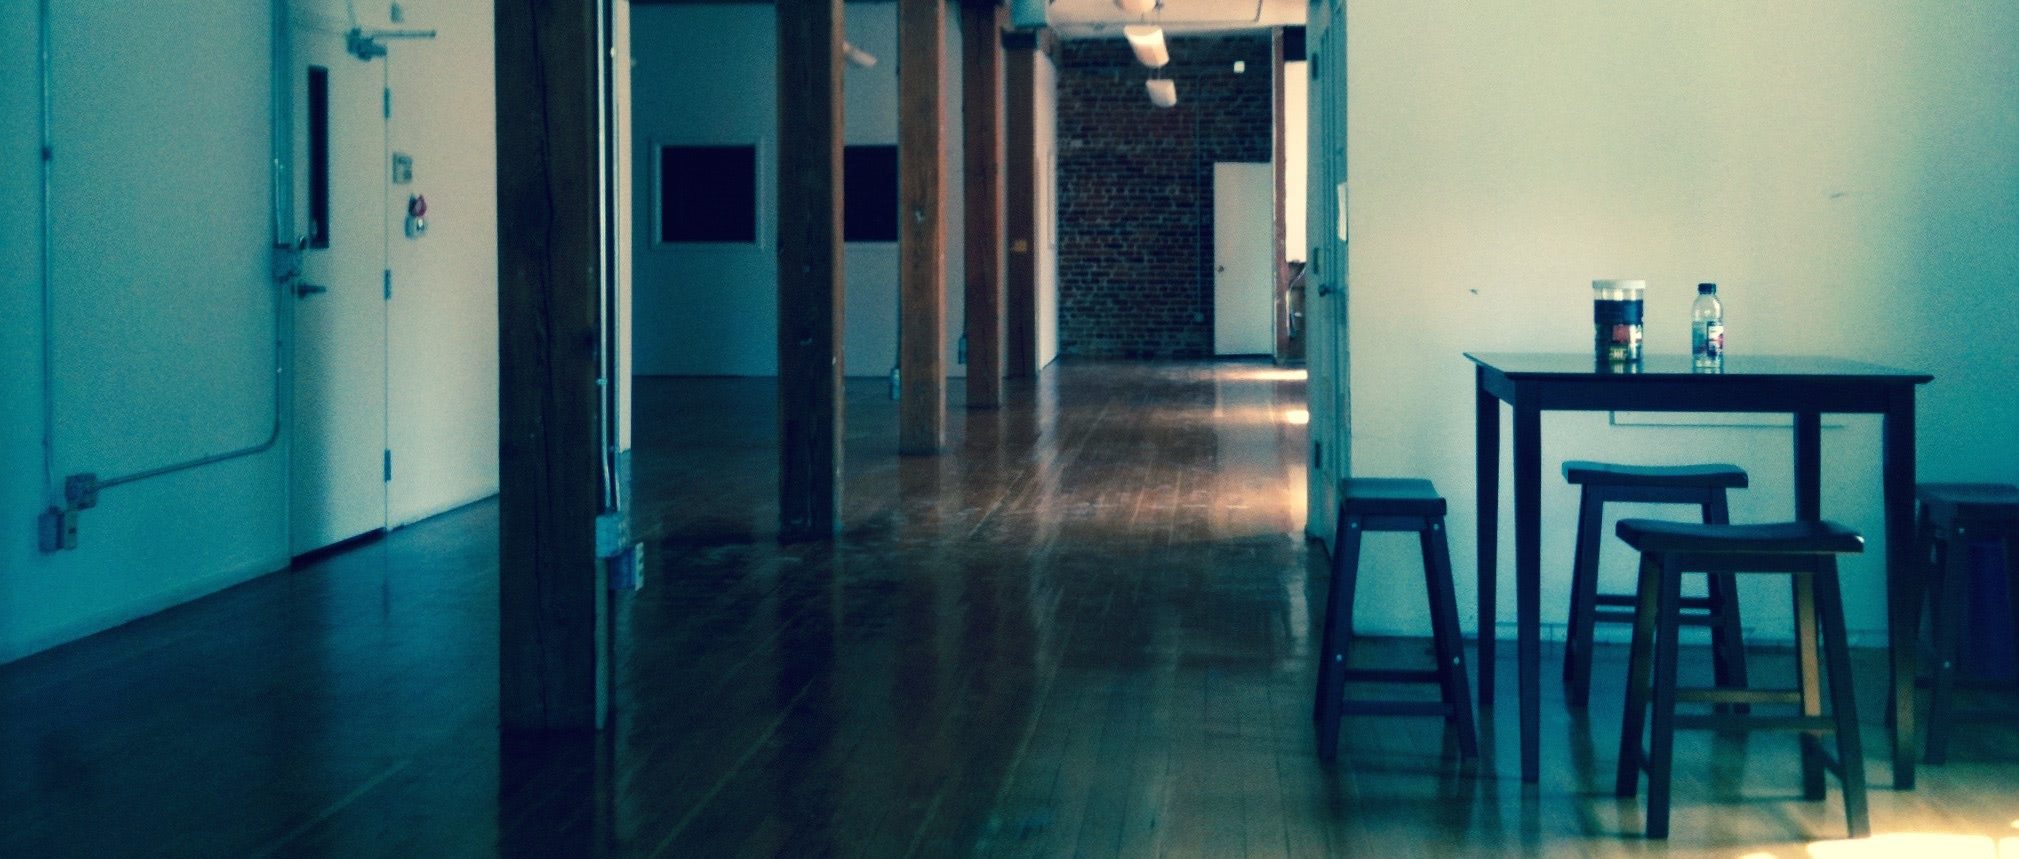 GitHub's very first office